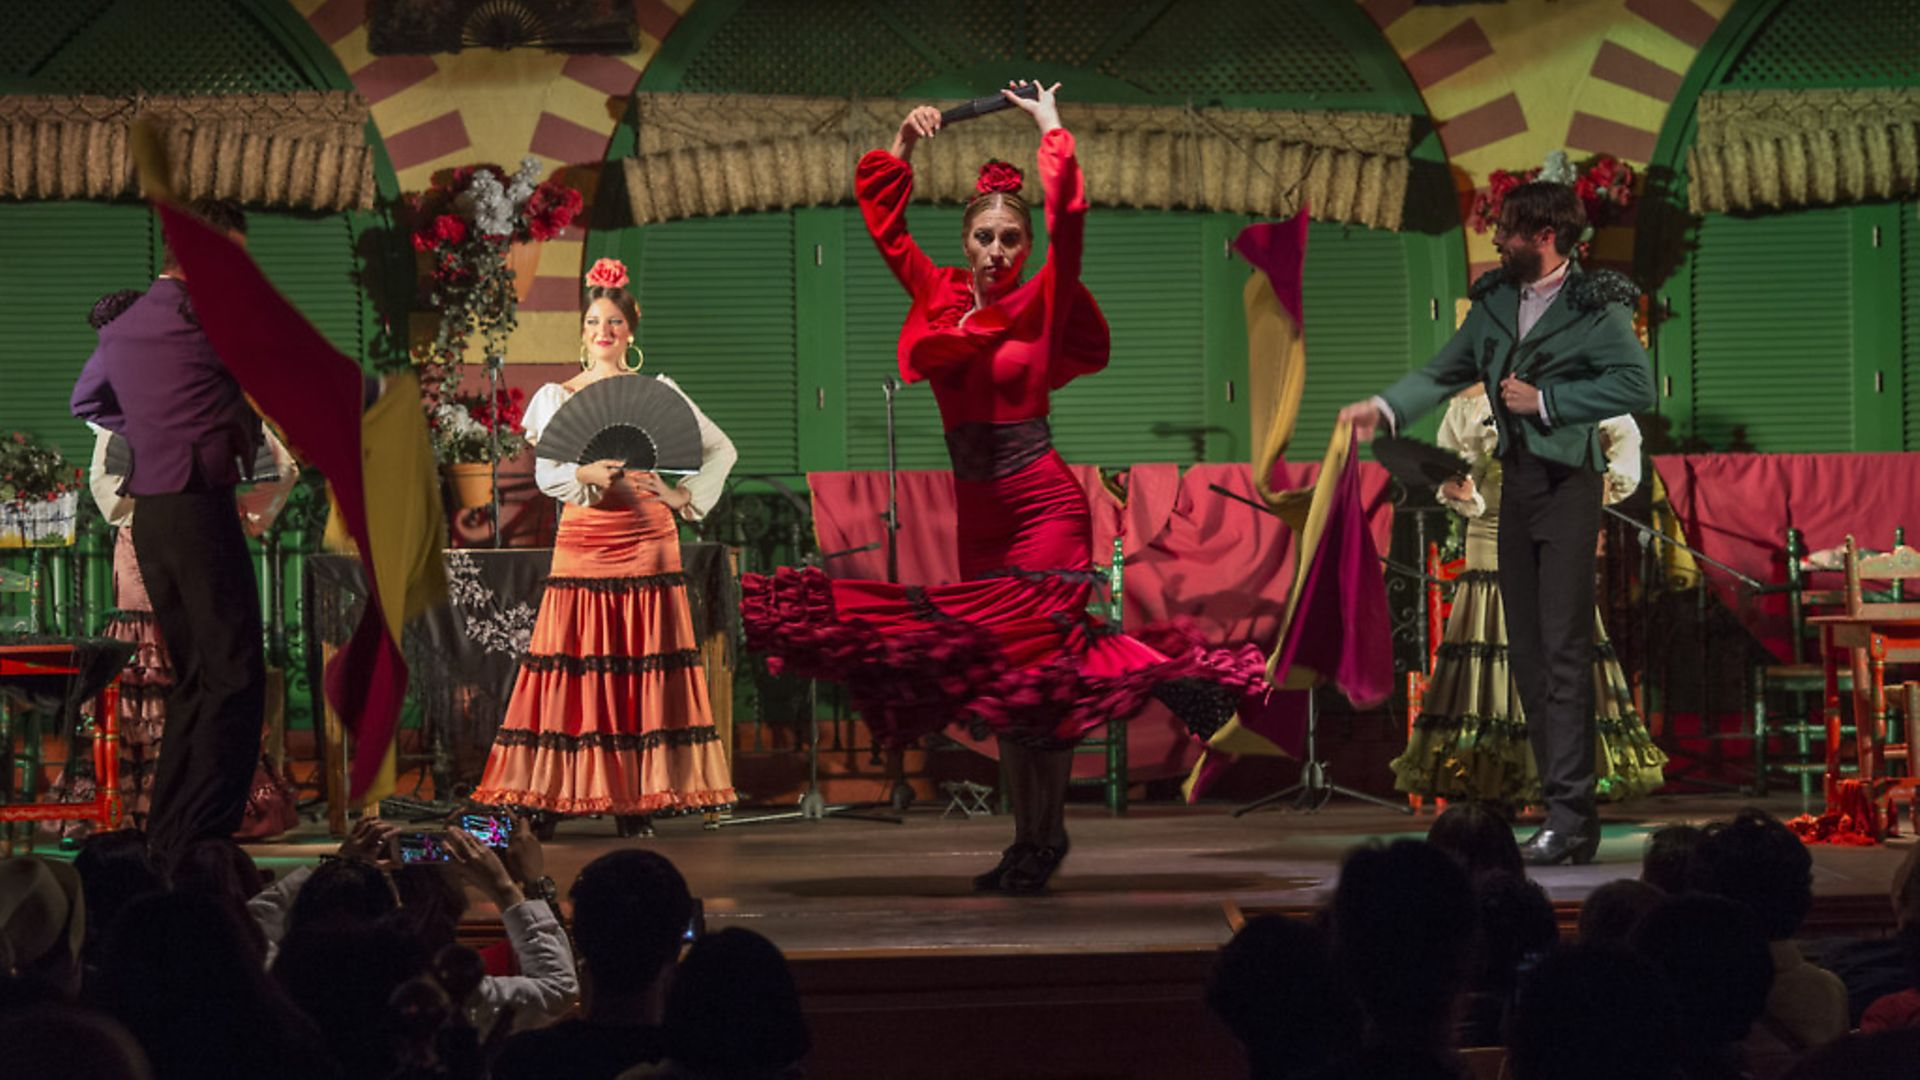 Dancers and musicians performing the Flamenco, a form of Spanish folk music and dance, during a dinner show in Seville, Andalusia, Spain. (Photo by Wolfgang Kaehler/LightRocket via Getty Images) - Credit: LightRocket via Getty Images